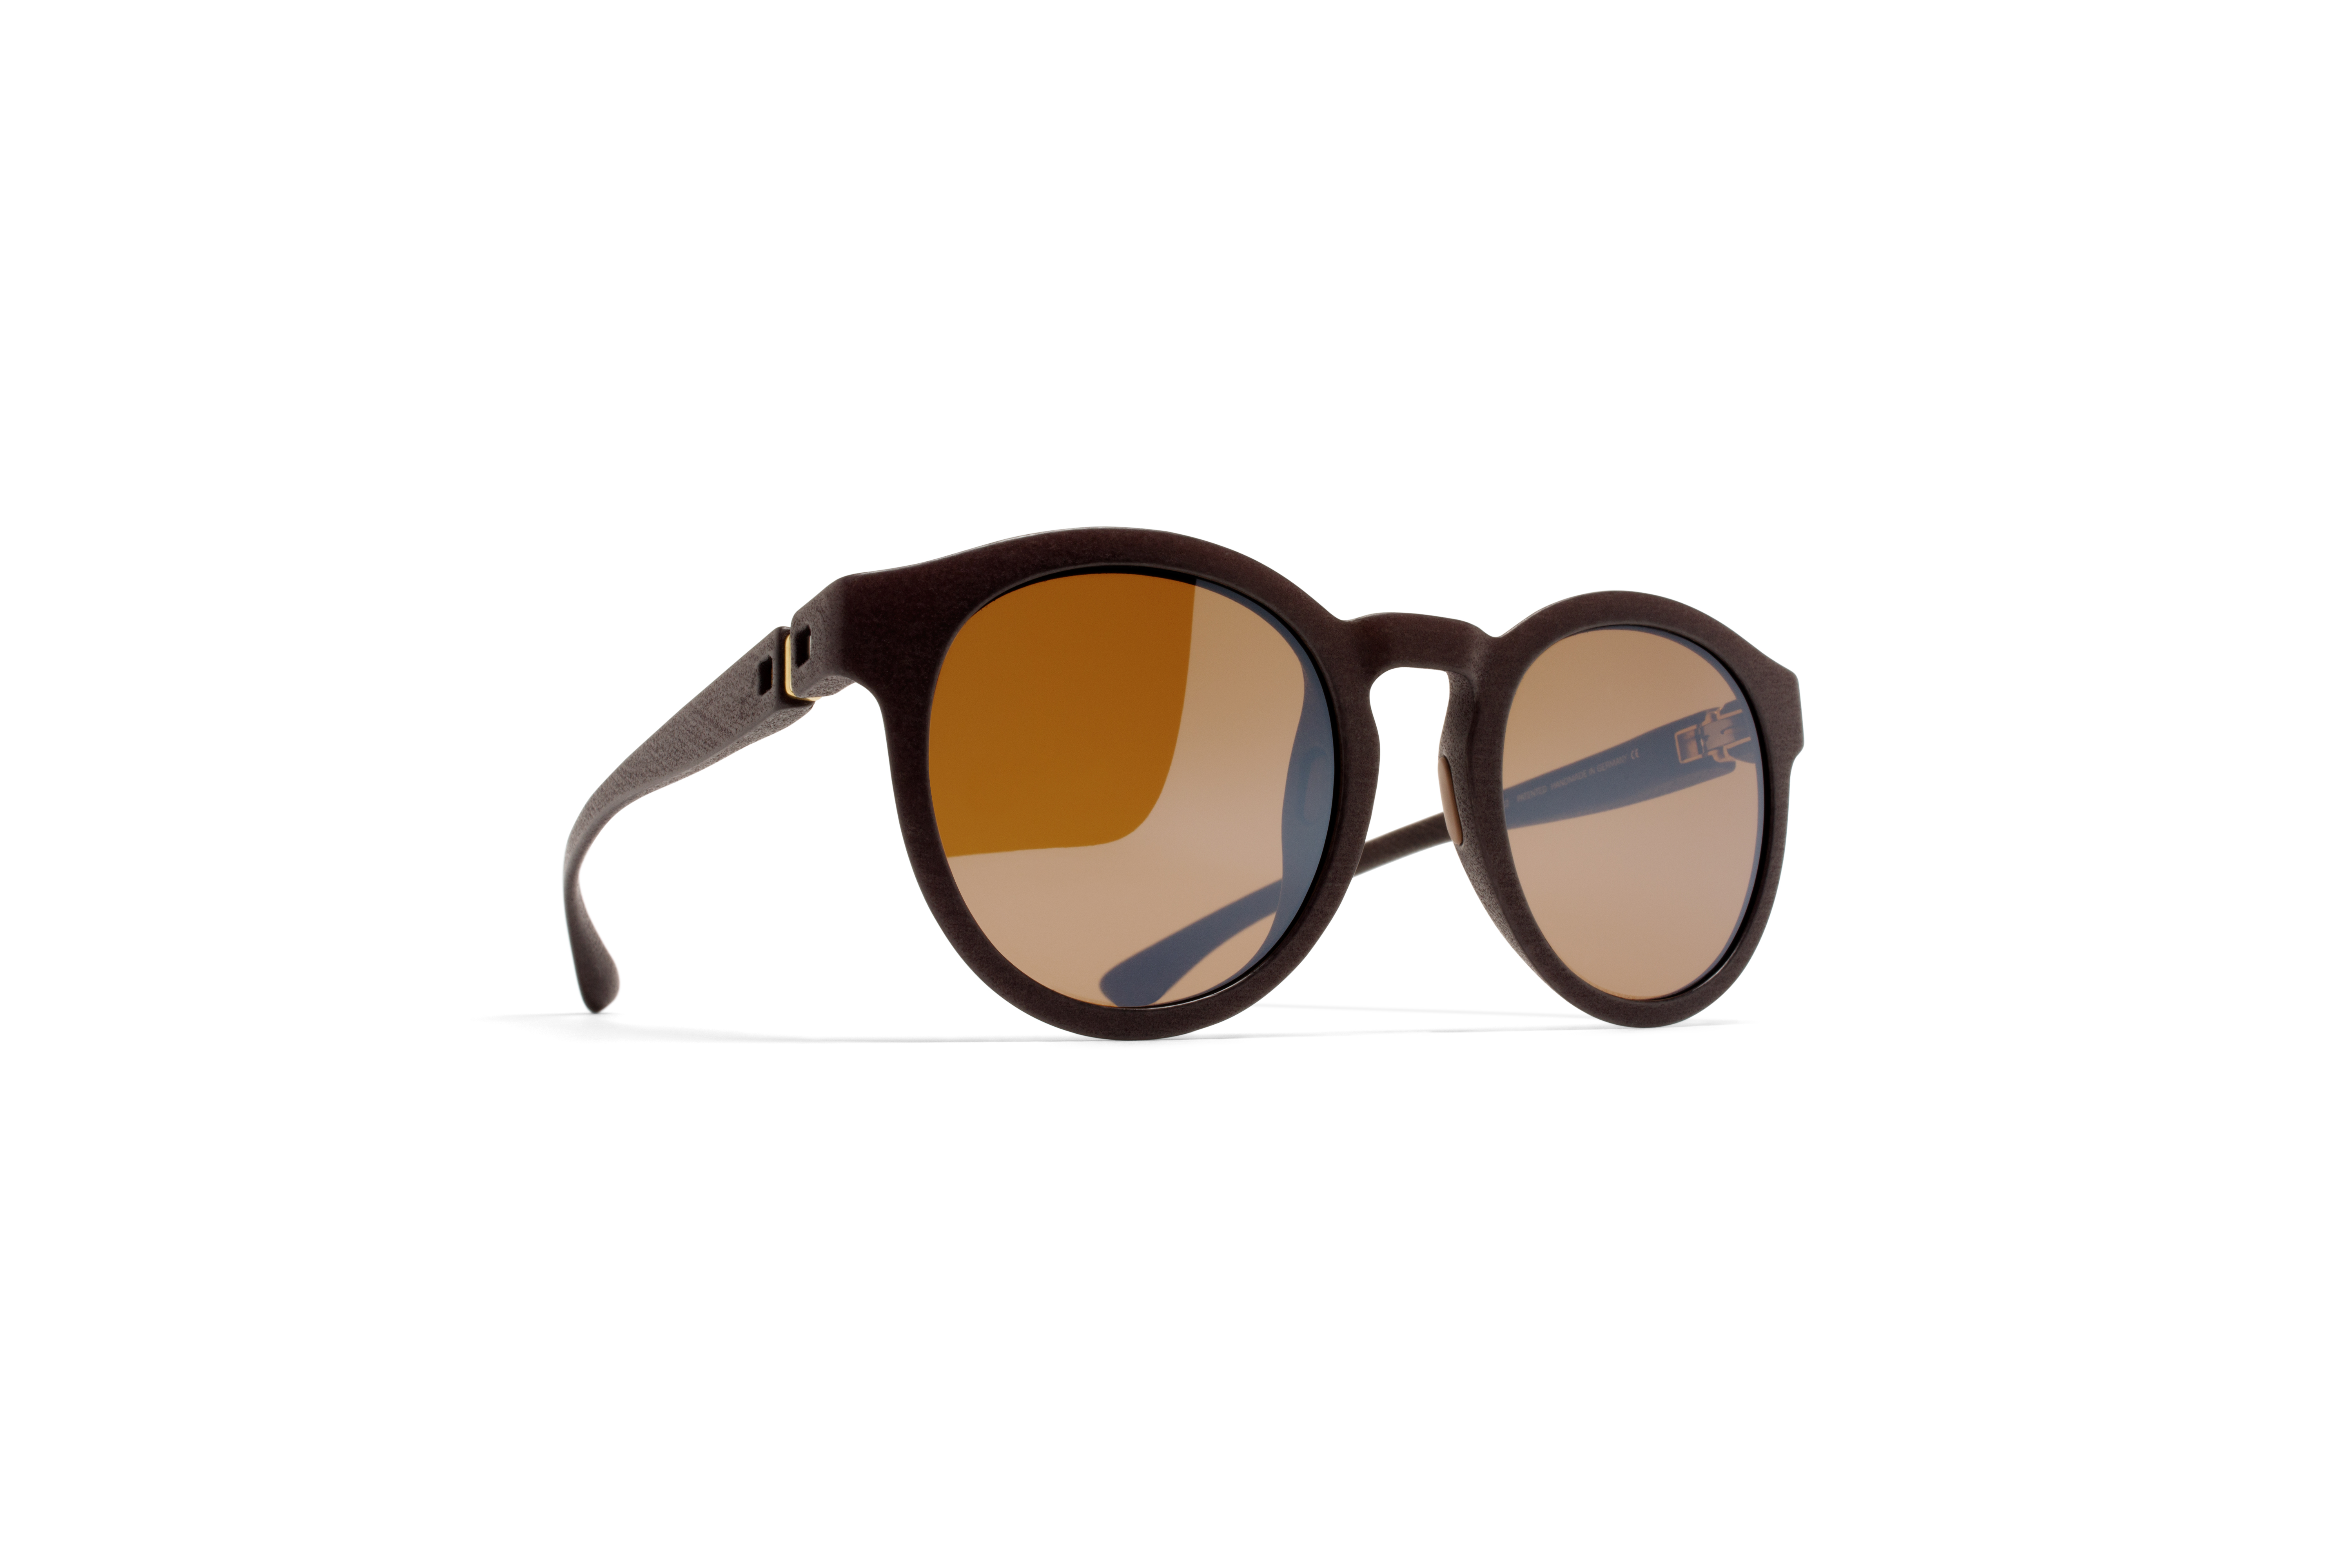 MYKITA Mylon Sun Giba Md22 Ebony Brown Siennabrown570f9779ae9ac